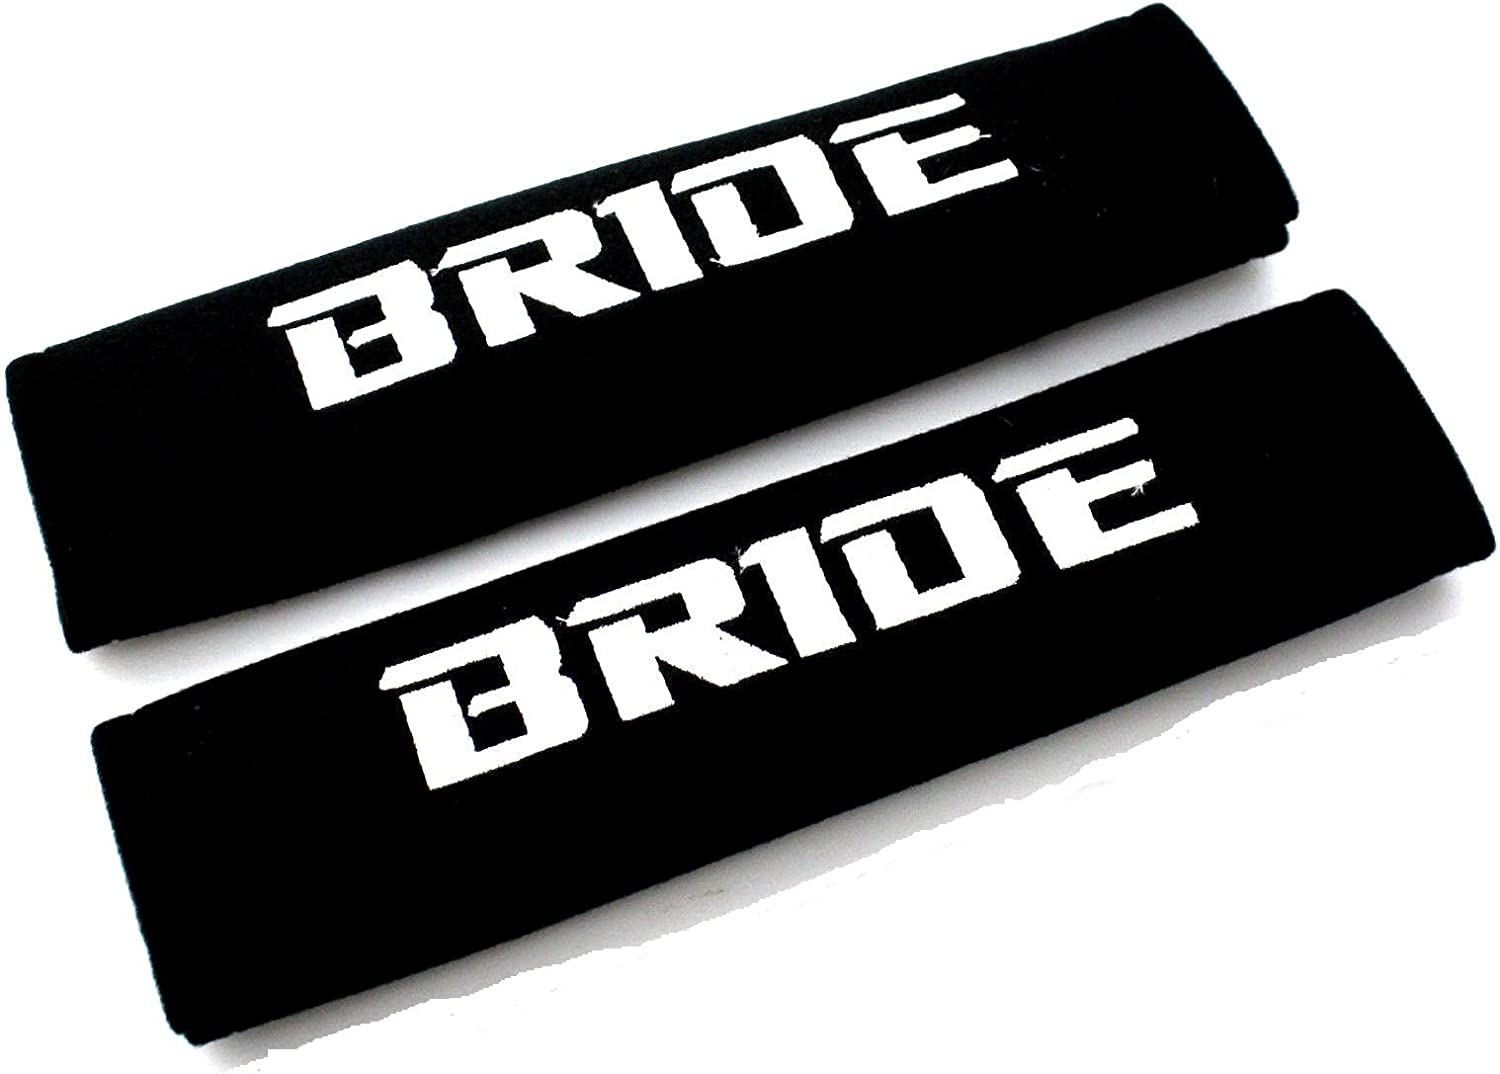 NEW Seat Belt Cover Shoulder Pads Pairs with Orange Embroidery Bride Racing Logo